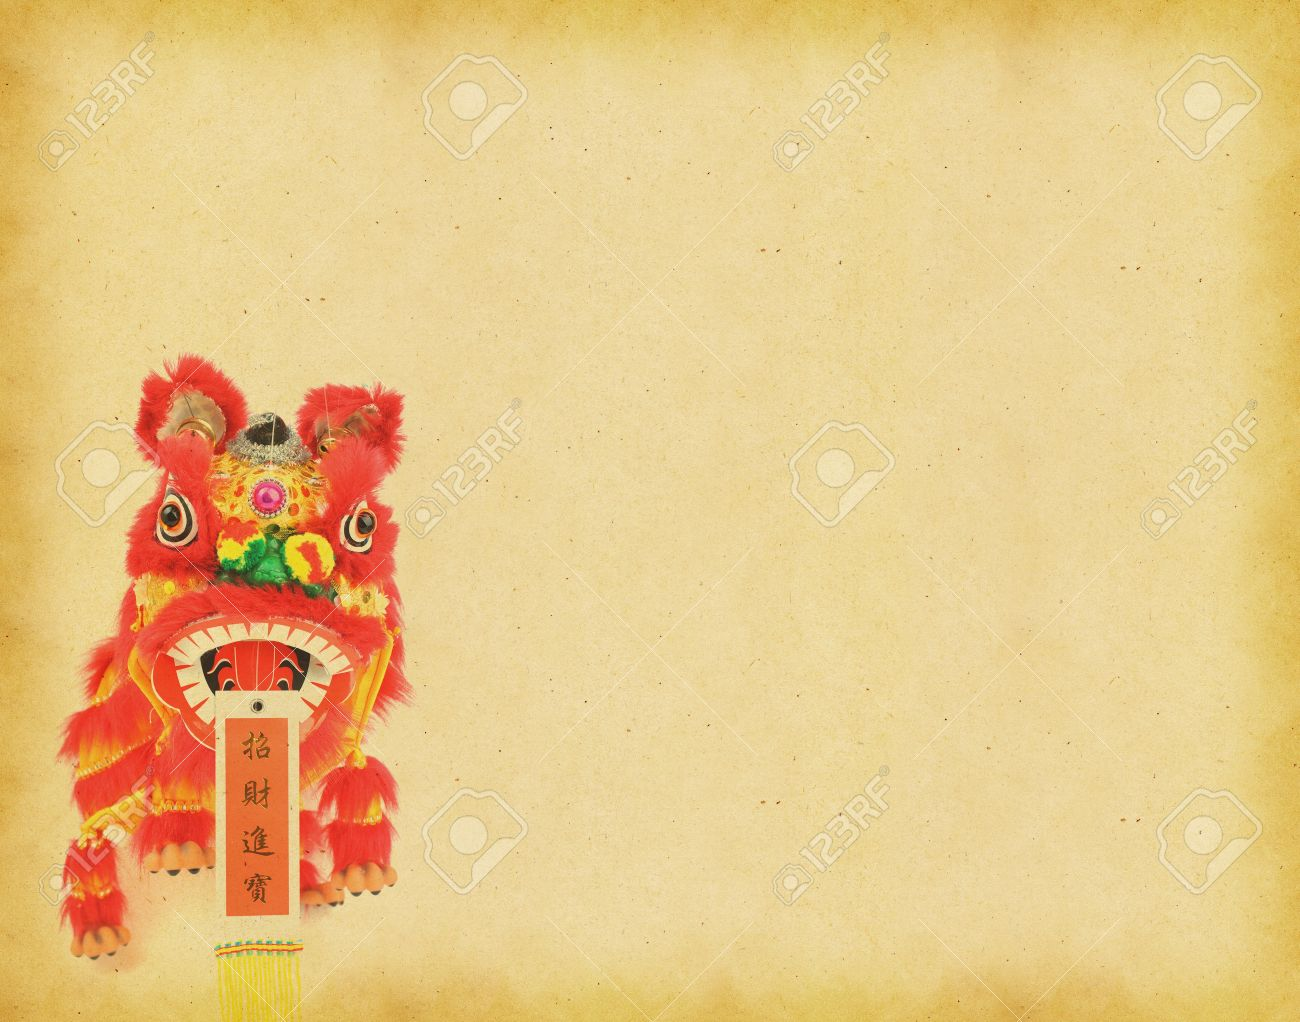 Exelent Wall Decorations For Chinese New Year Photos - Wall ...